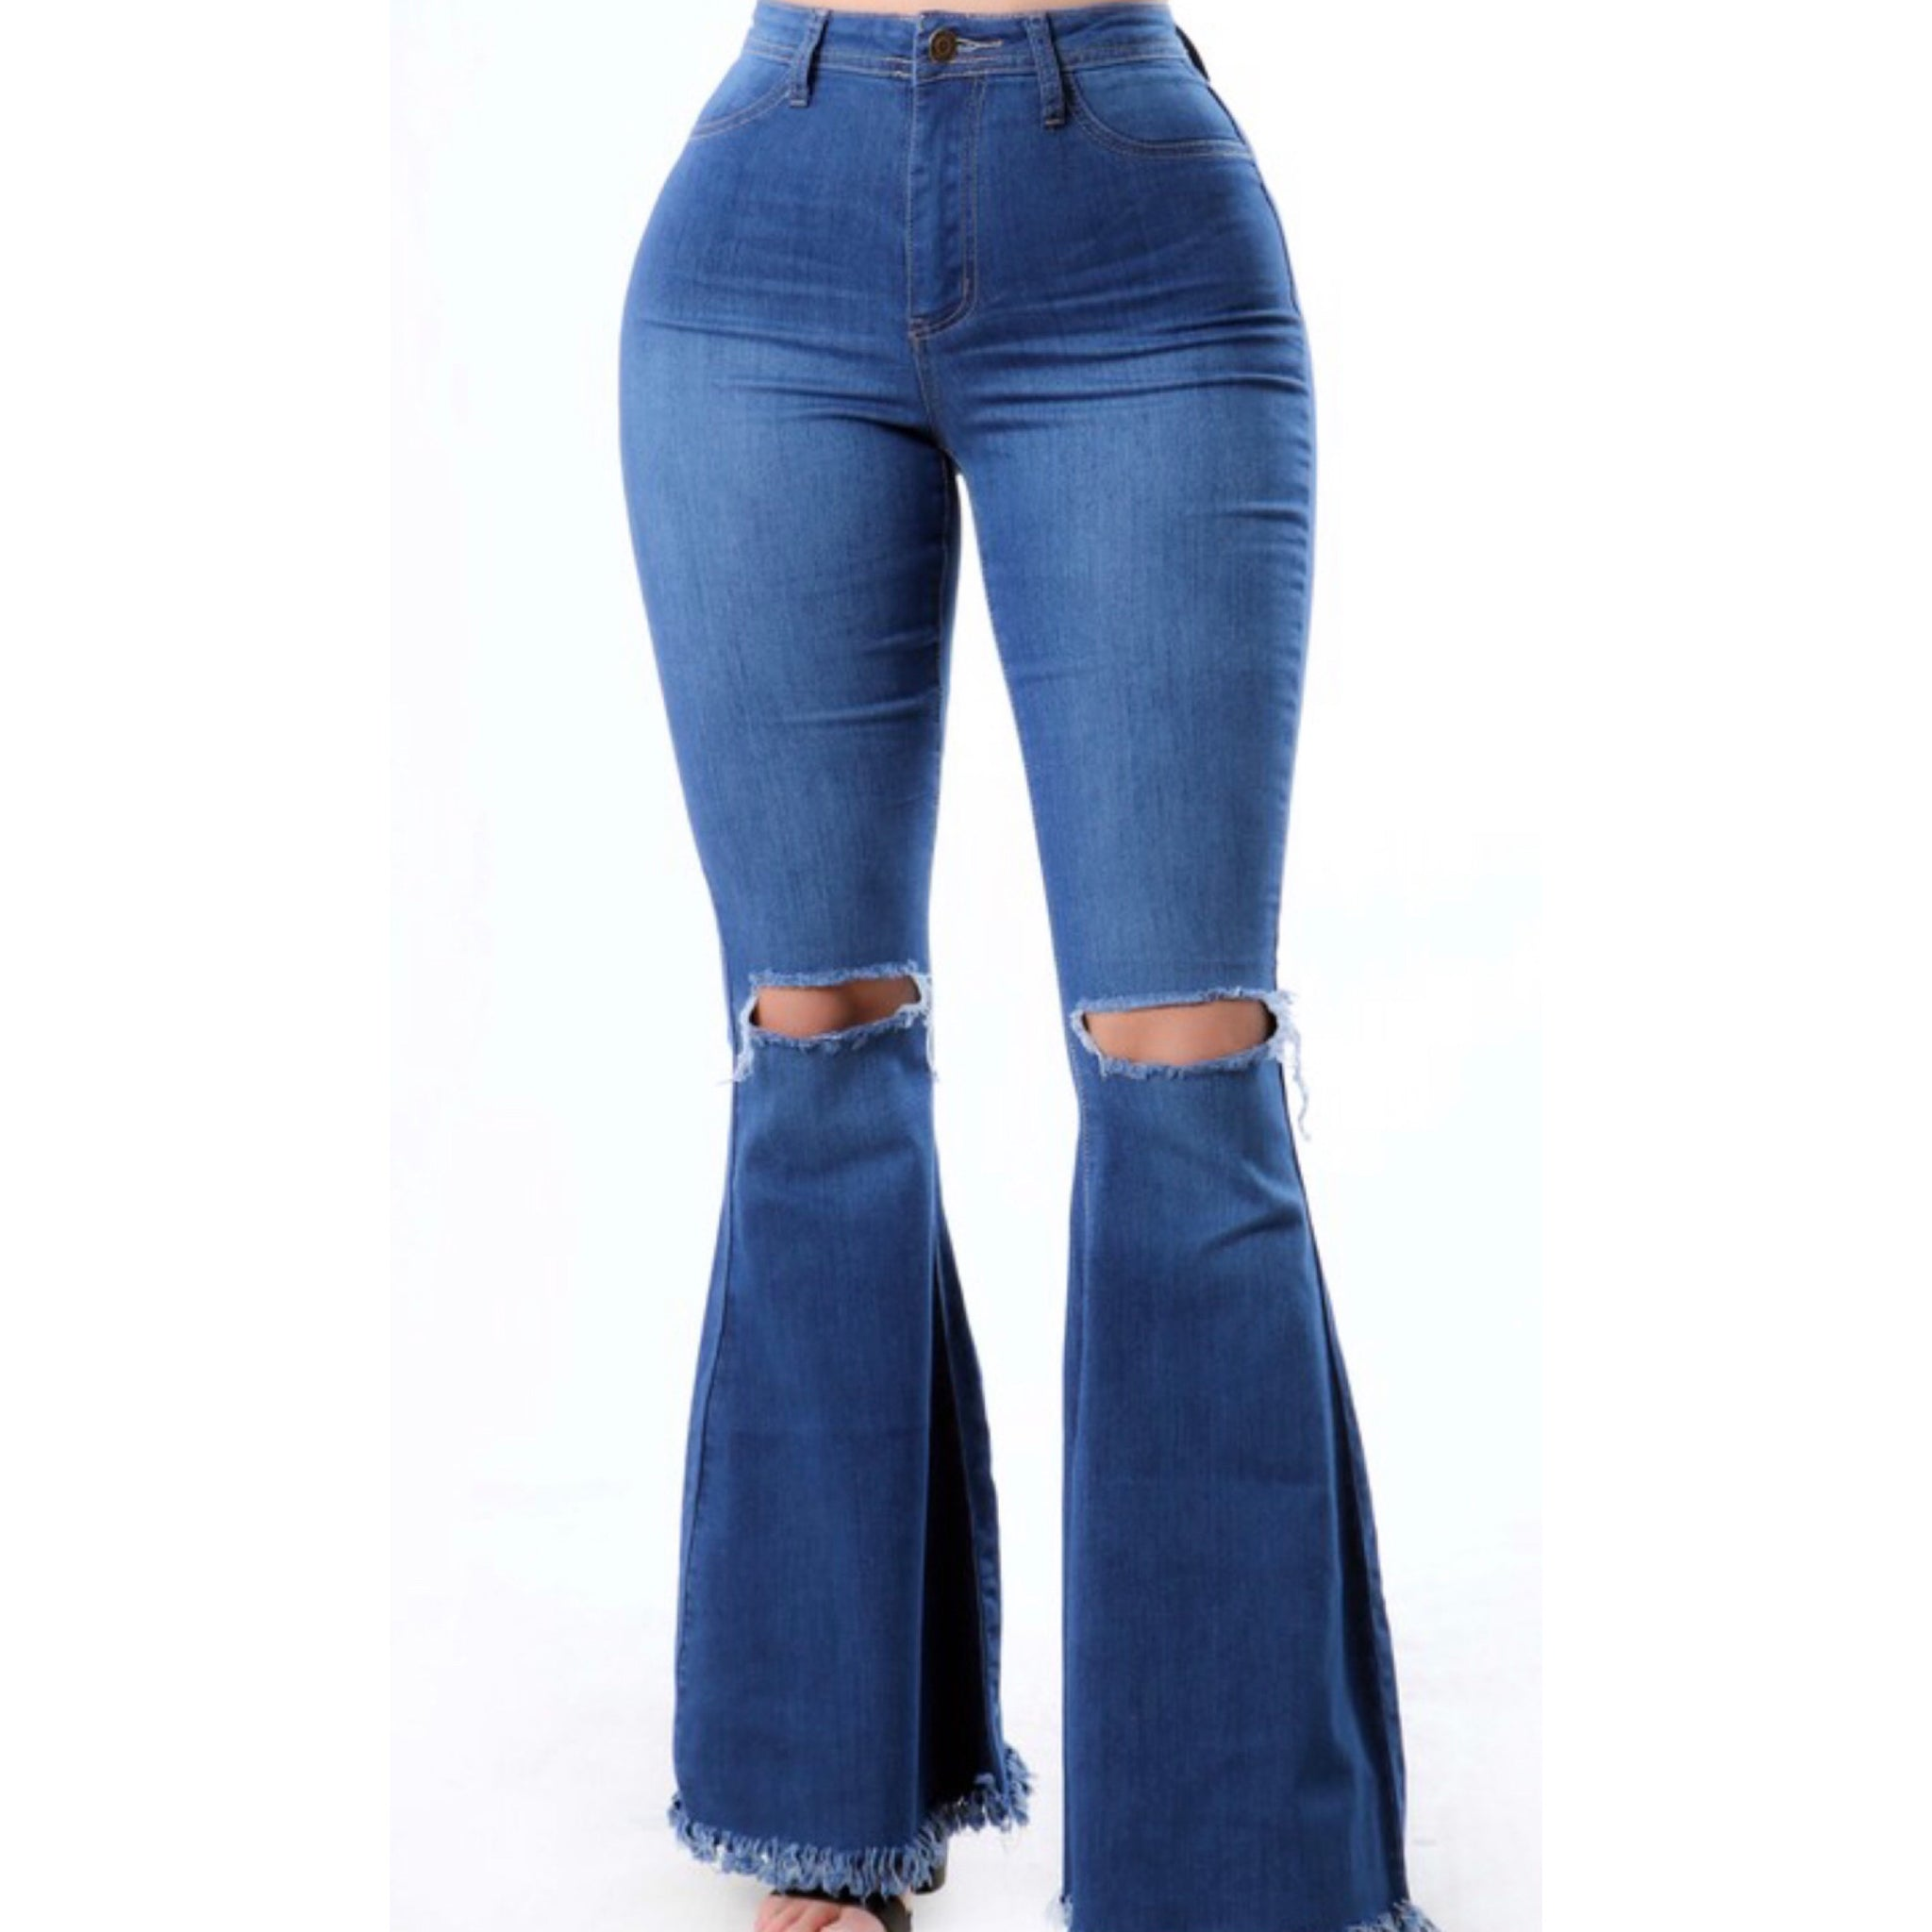 Knees Out Denim Flare Jeans